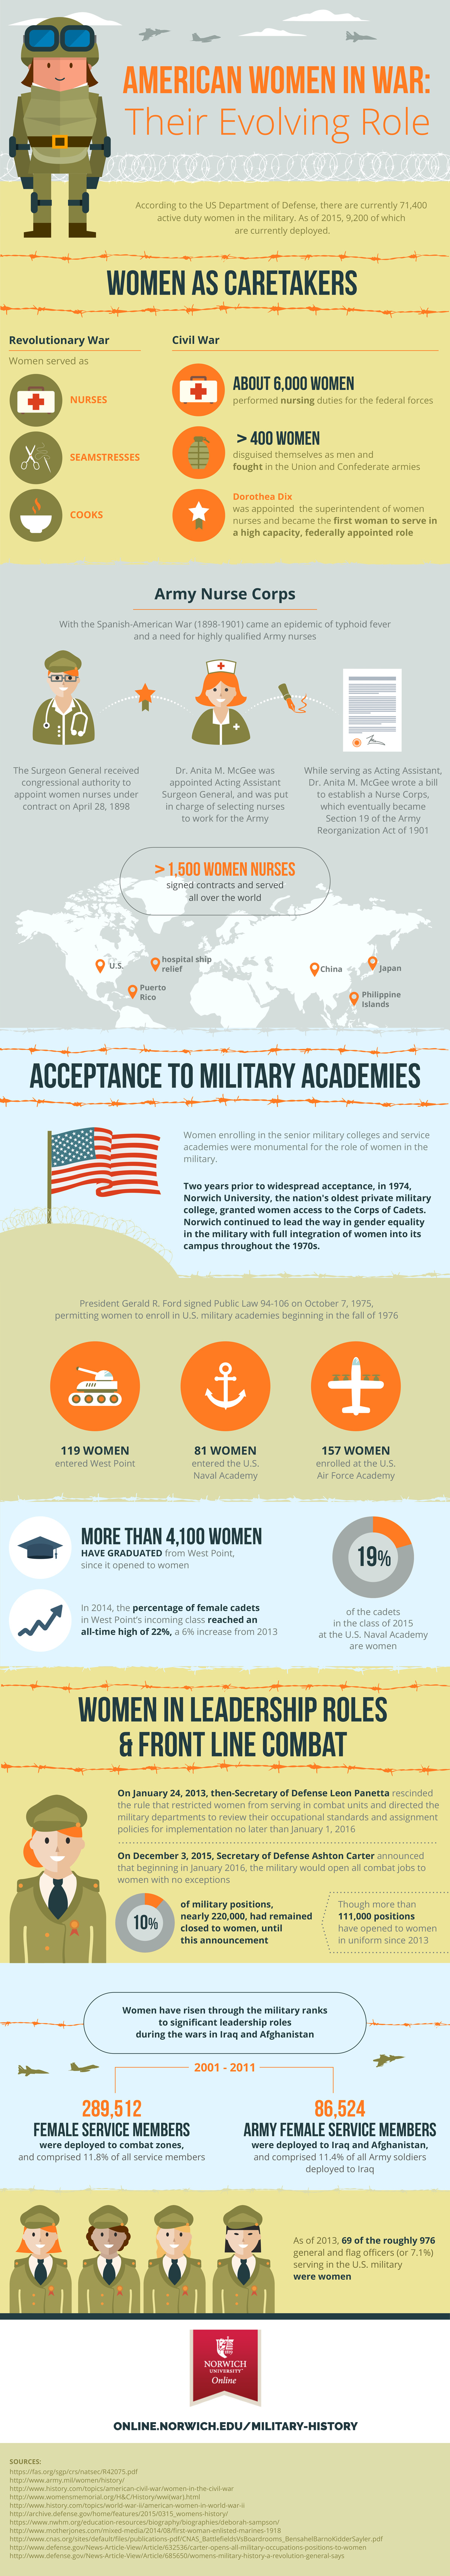 infographic on american women evolving role in war